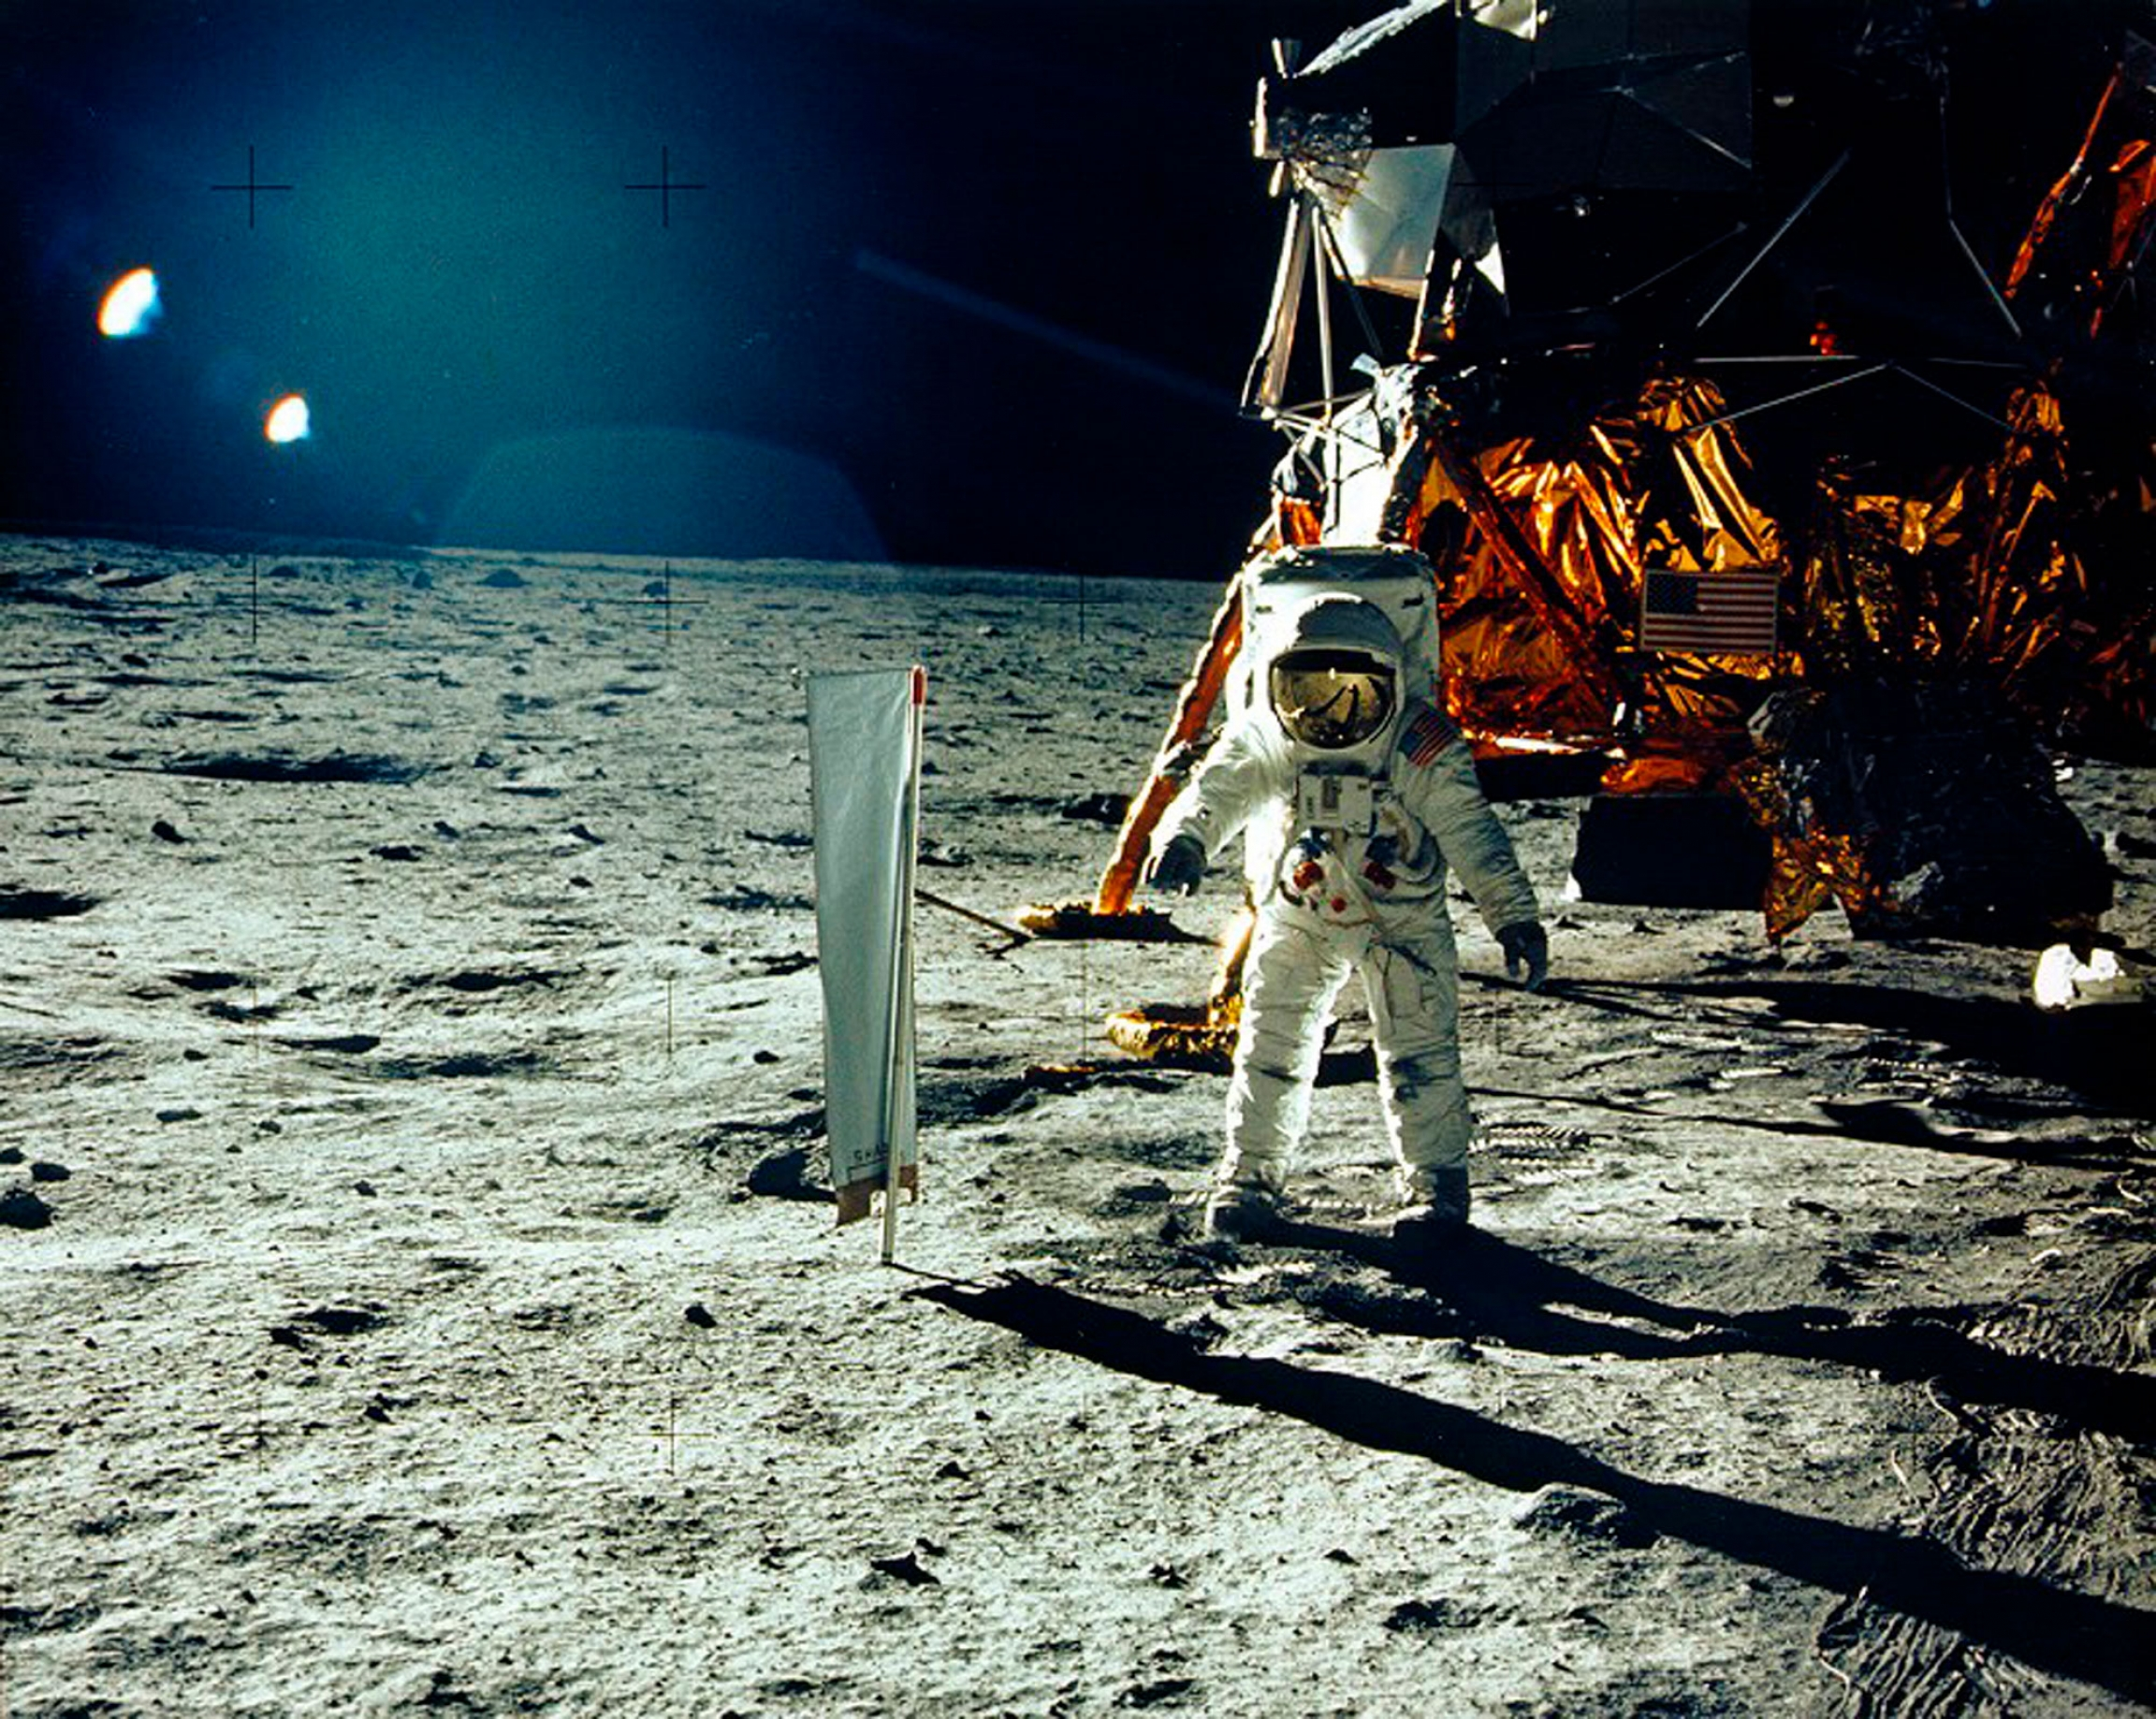 An astraunant is show in full protective gear standing on the surface of the moon.